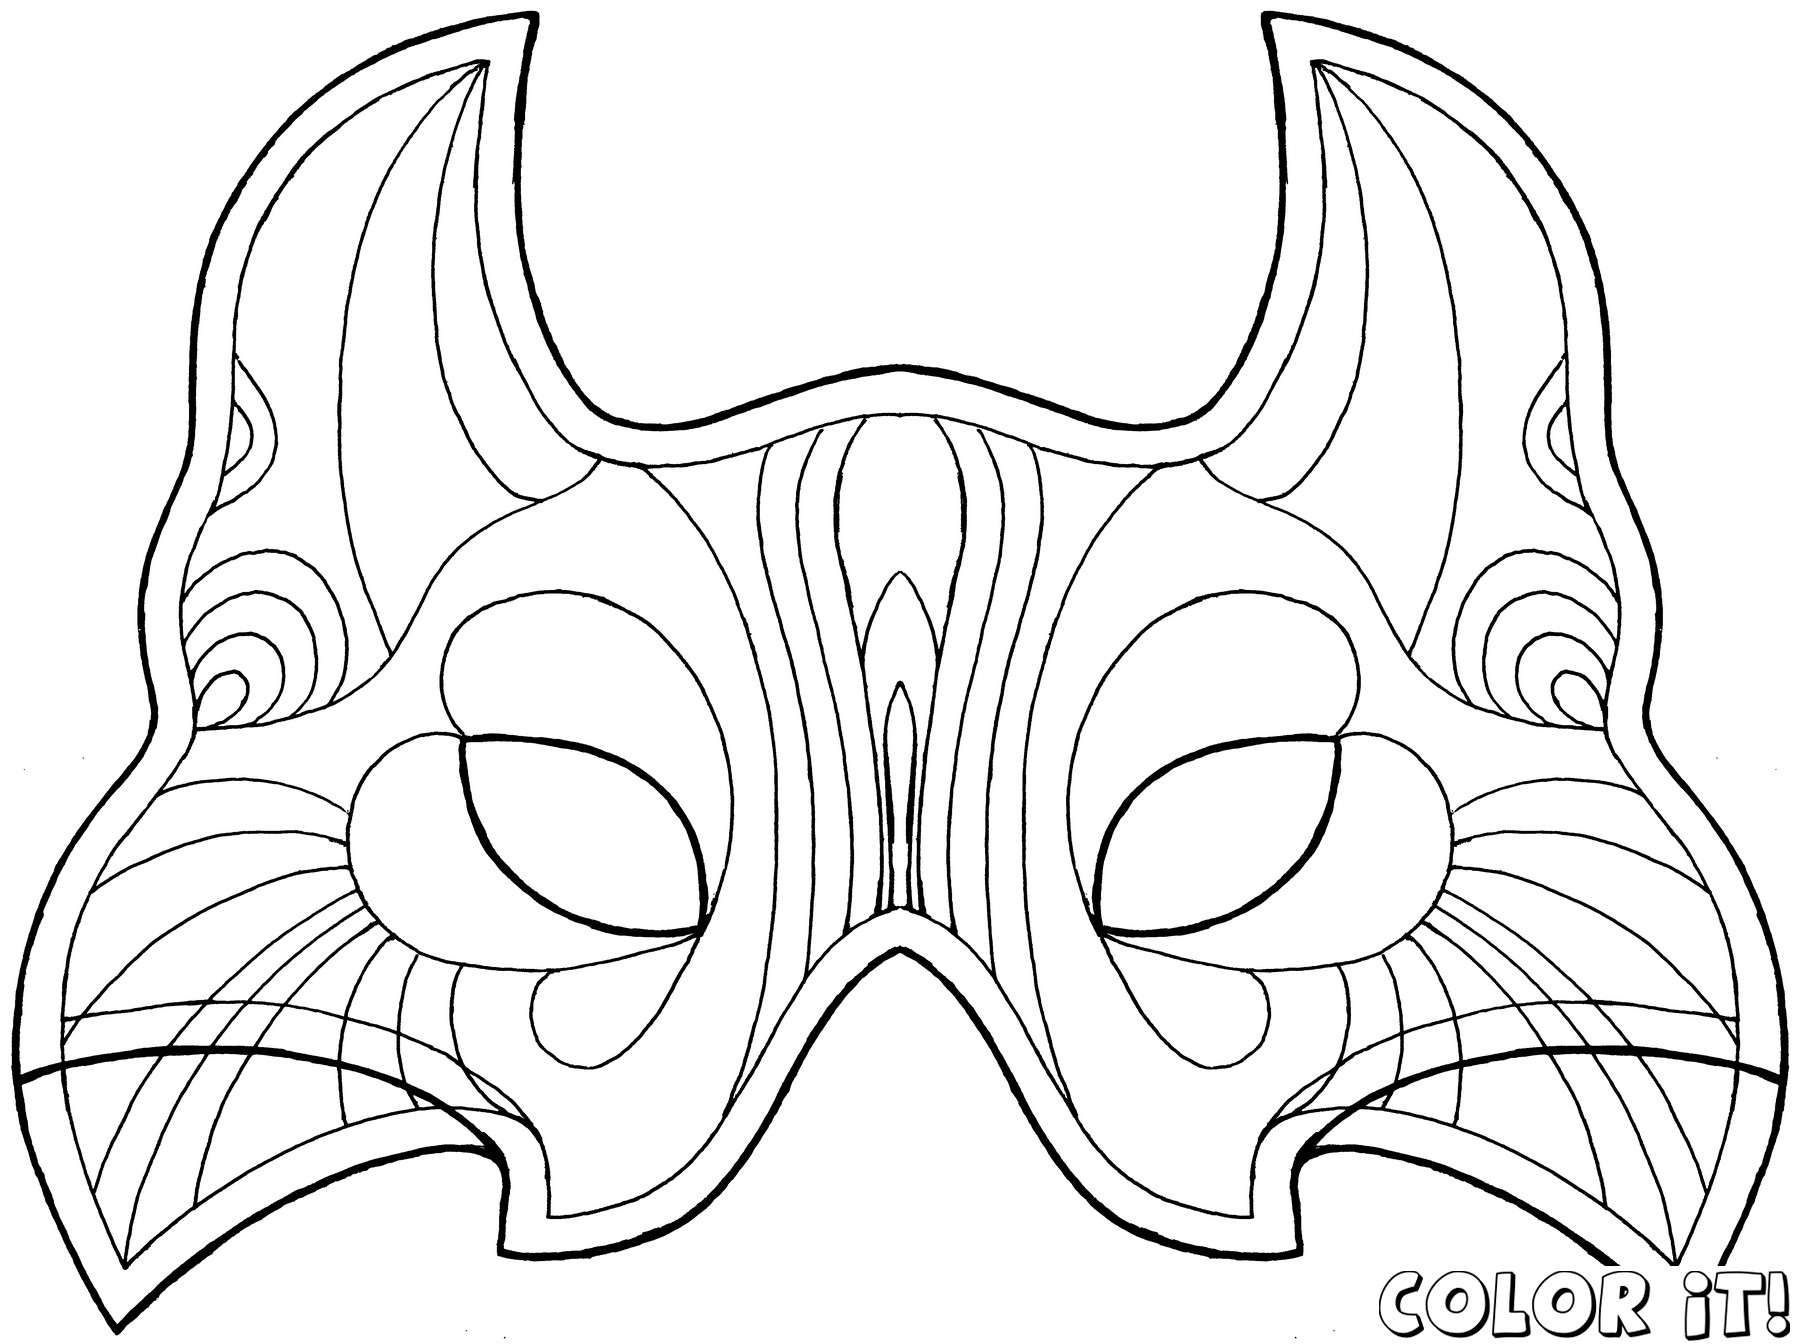 Blank Face Coloring Page Getcoloringpages Mask Templates - Free Printable Wolf Face Mask